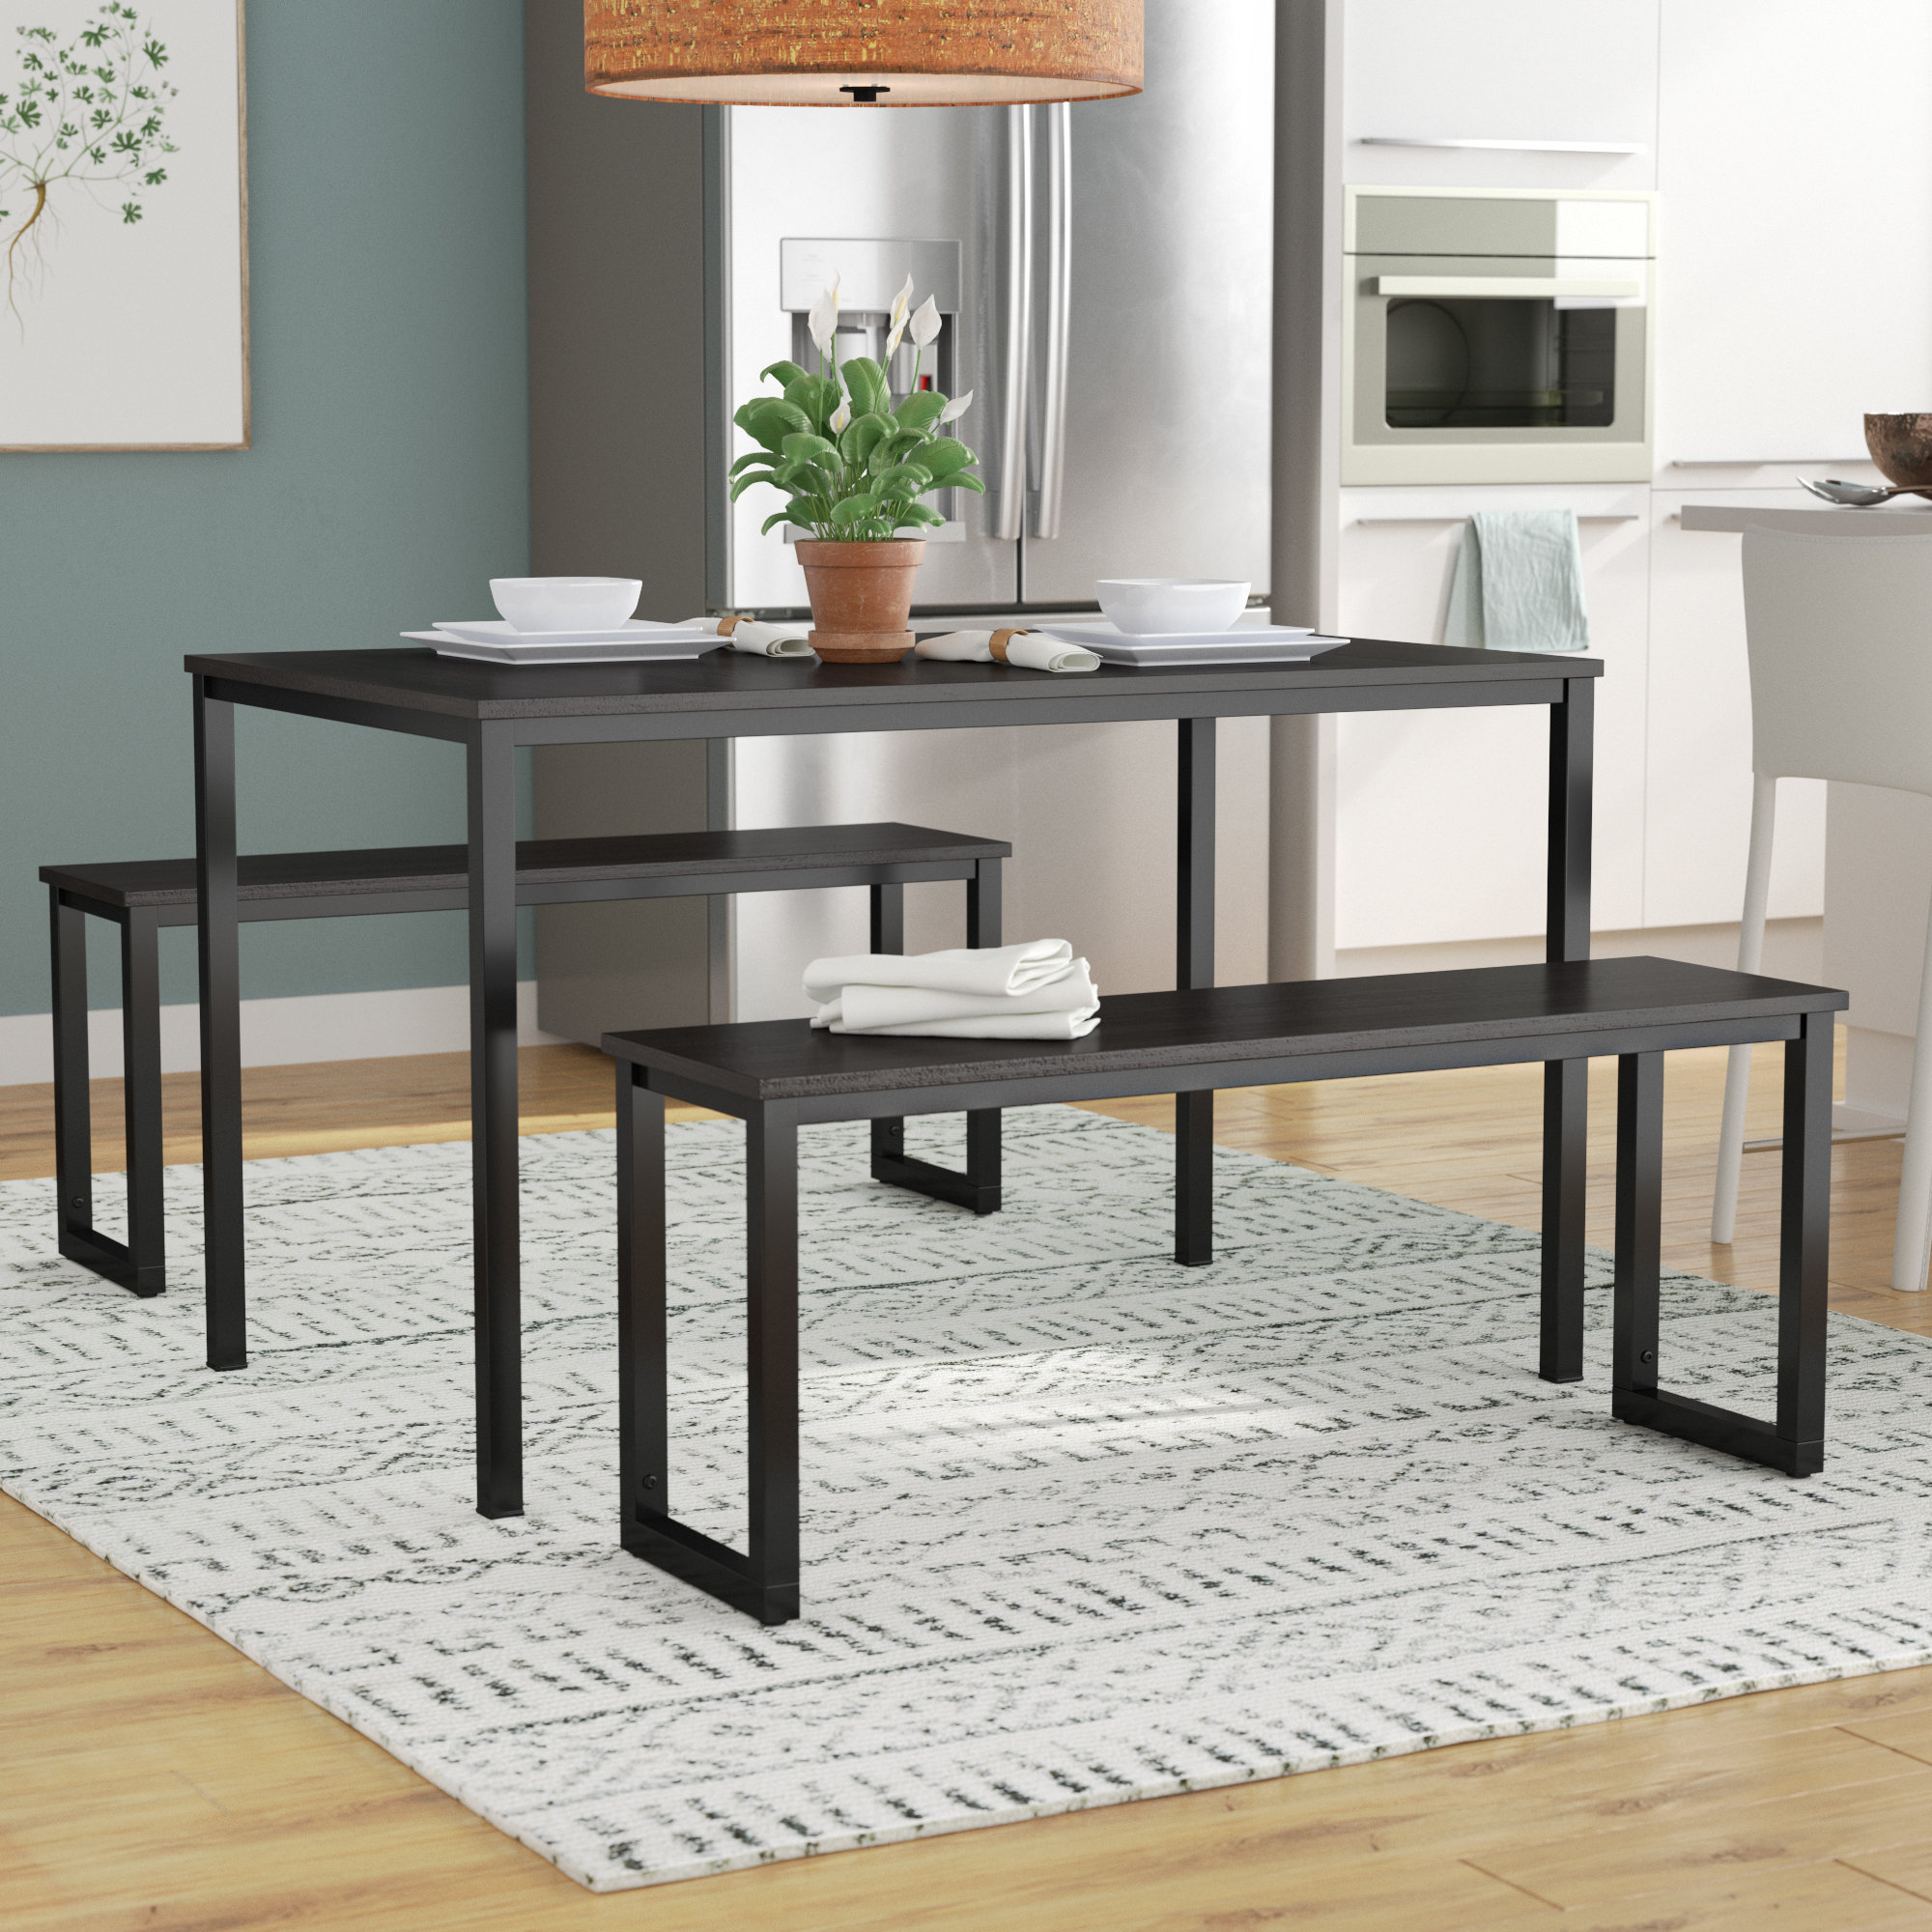 Frida 3 Piece Dining Table Sets With Regard To Recent Wrought Studio Chelmsford 3 Piece Dining Set & Reviews (#11 of 20)